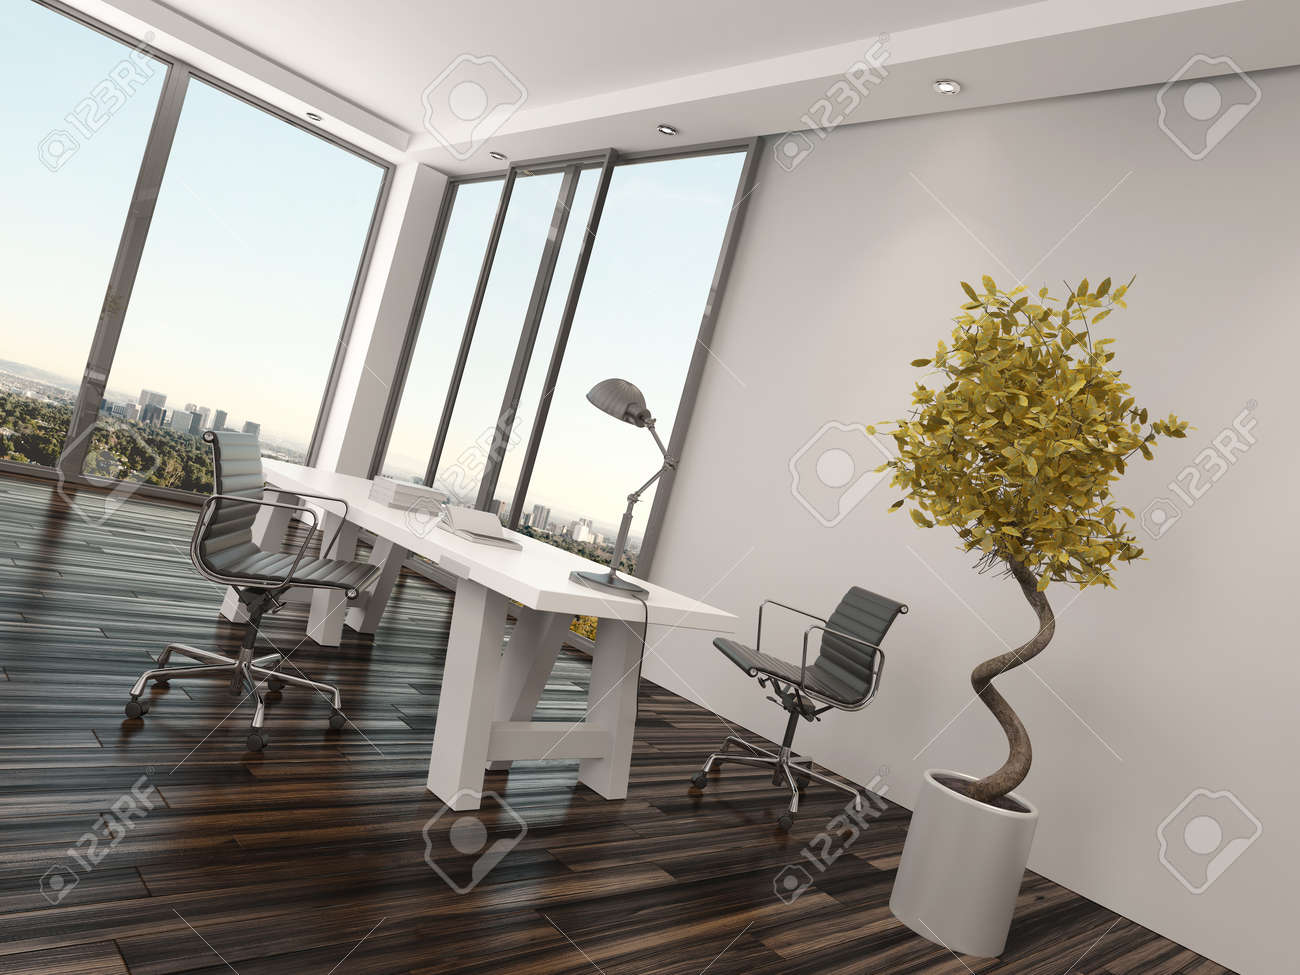 Modern Home Office Interior Design With wo Office hairs On ... - ^